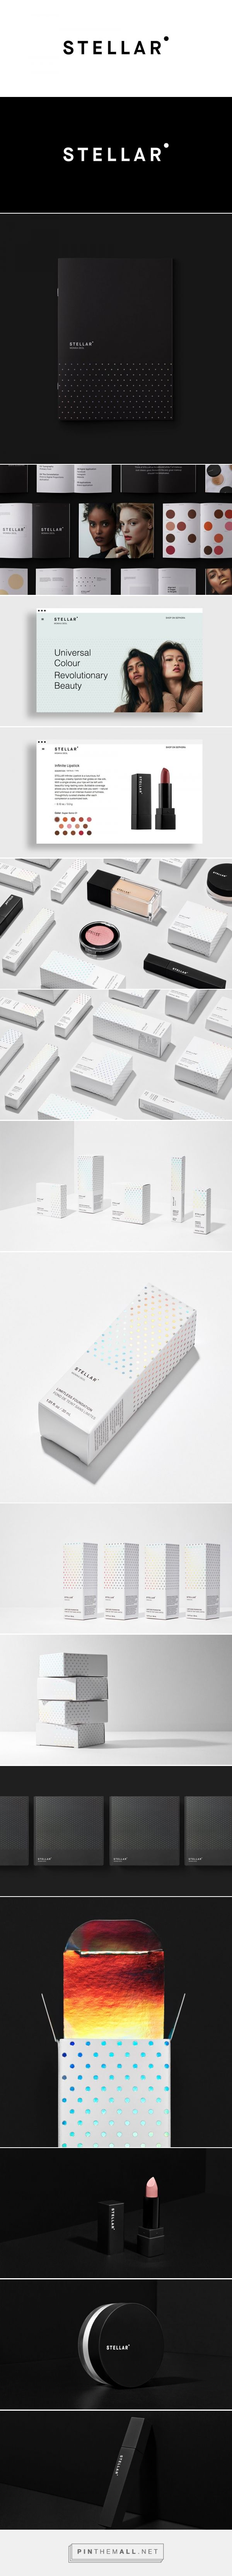 Brand New: New Name, Logo, and Packaging for Stellar by Bruce Mau Design... - a grouped images picture - Pin Them All